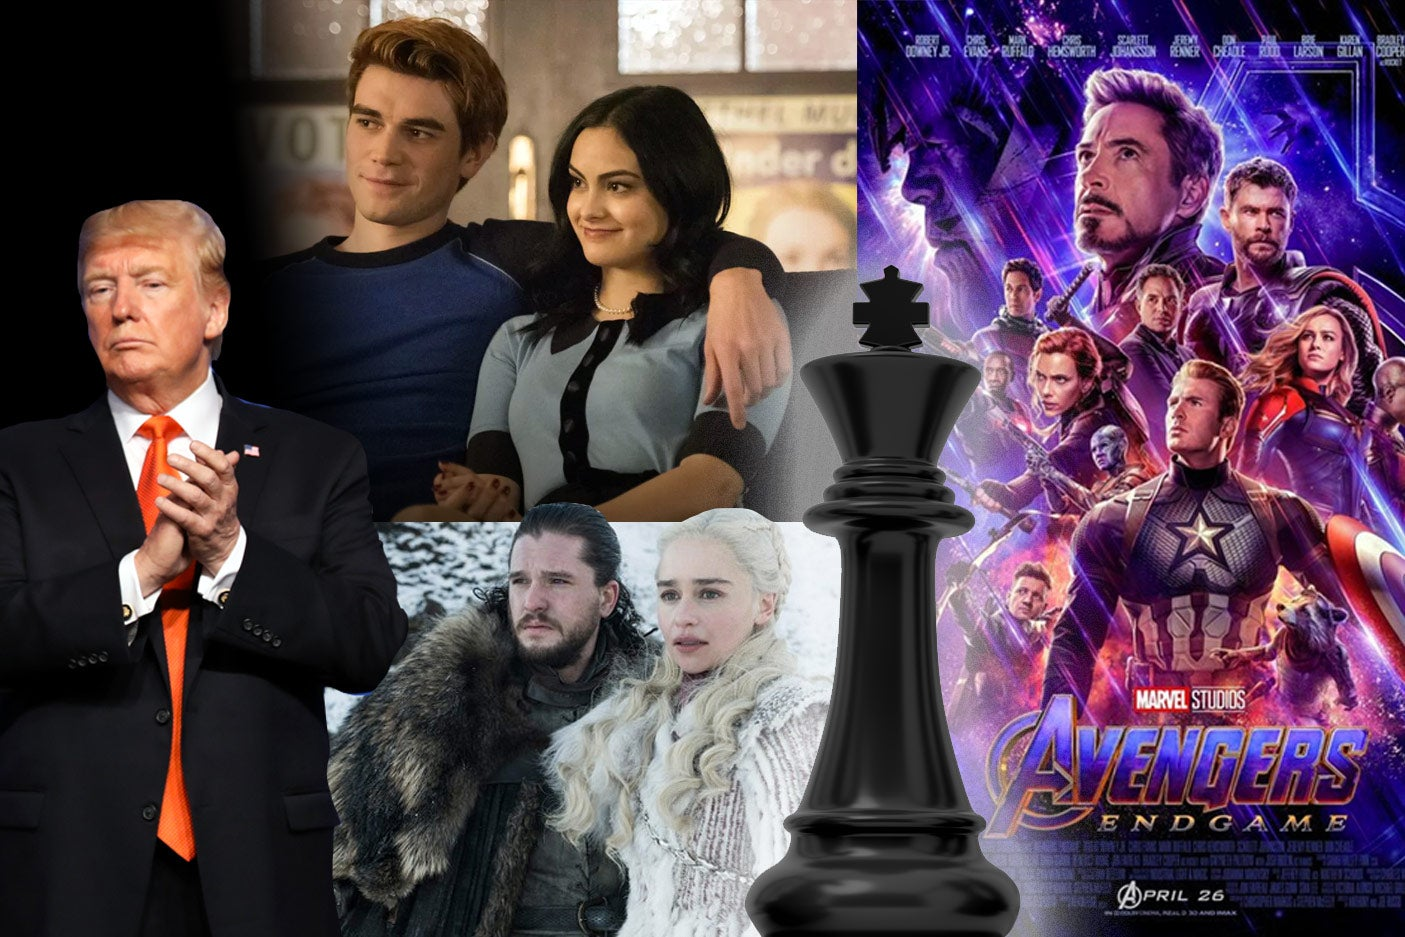 Photo collage of Donald Trump, Riverdale, Game of Thrones, Avengers: Endgame, and a chess king piece.